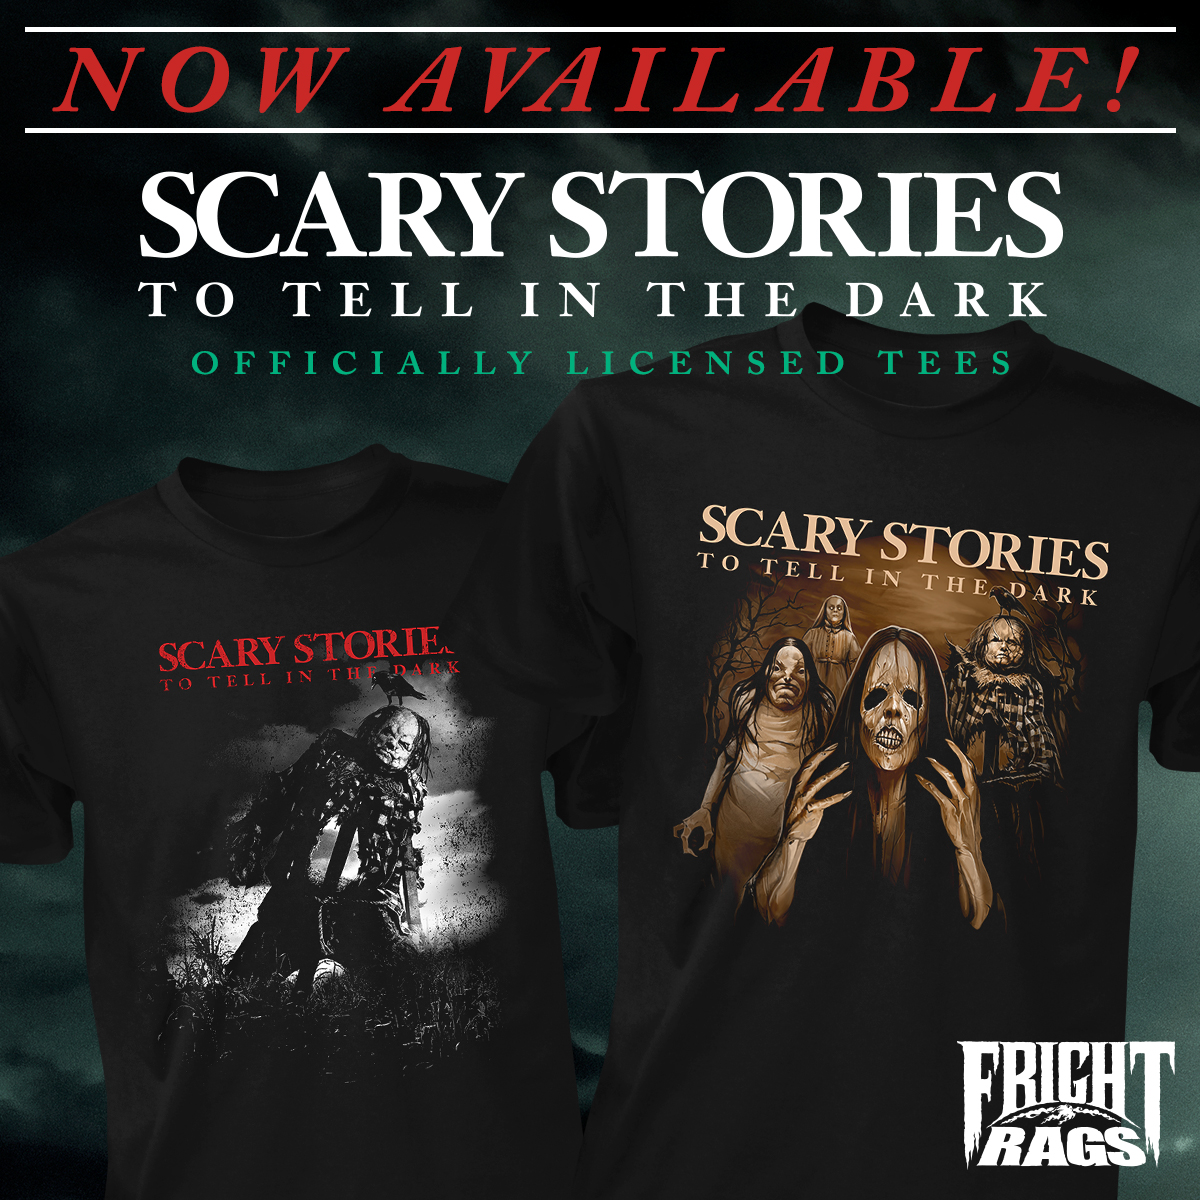 0819-ScaryStories-FrightRags.jpg